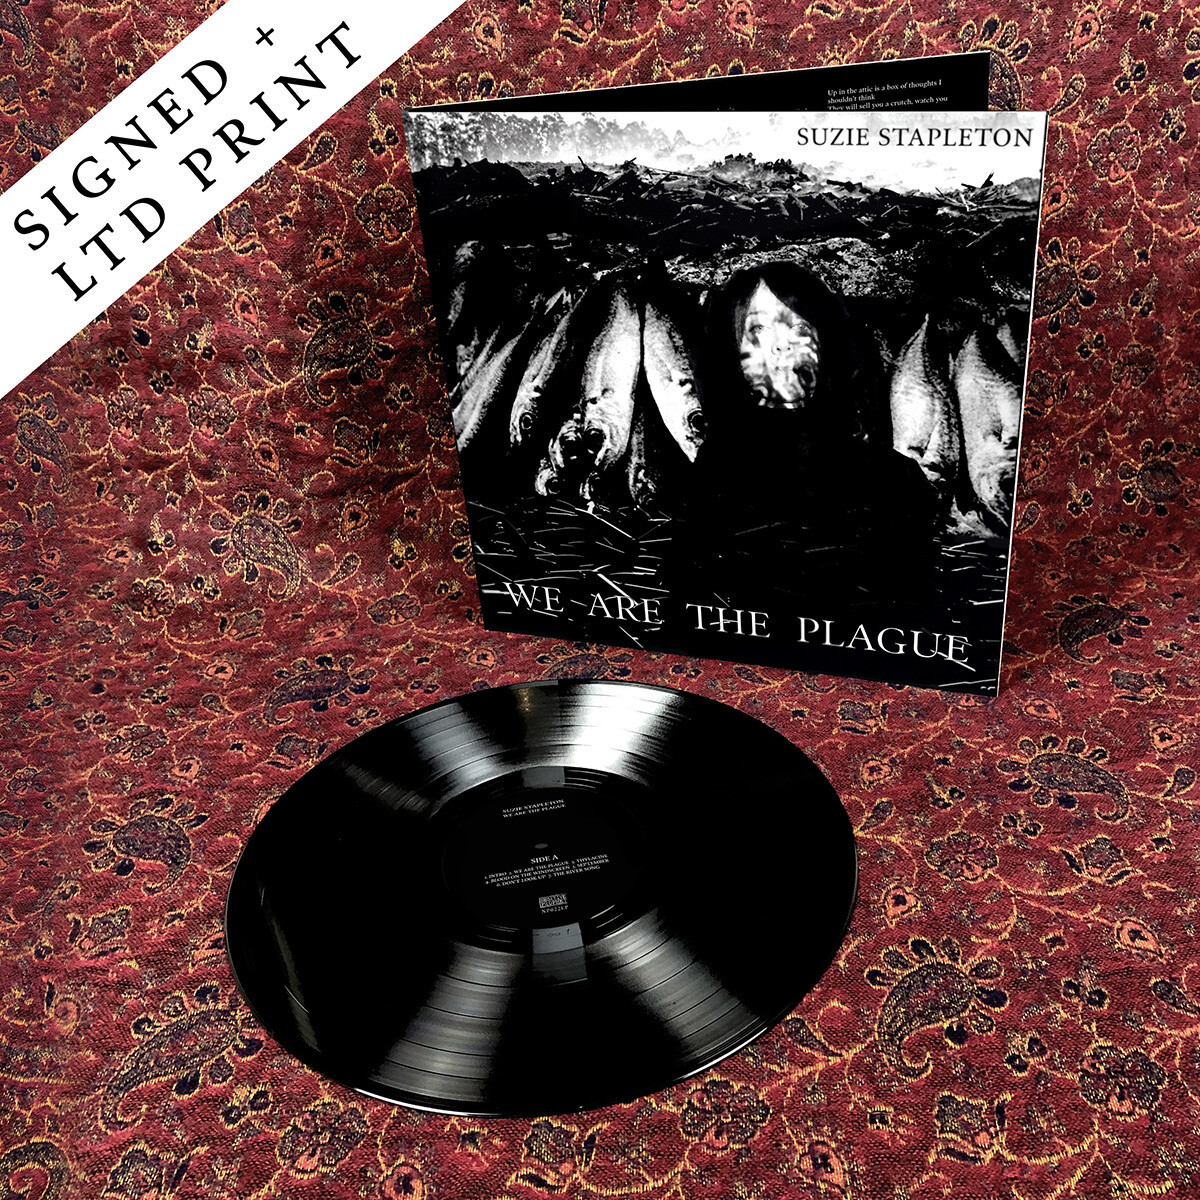 "We Are The Plague - 12"" Vinyl (Signed) + Limited Edition Print"